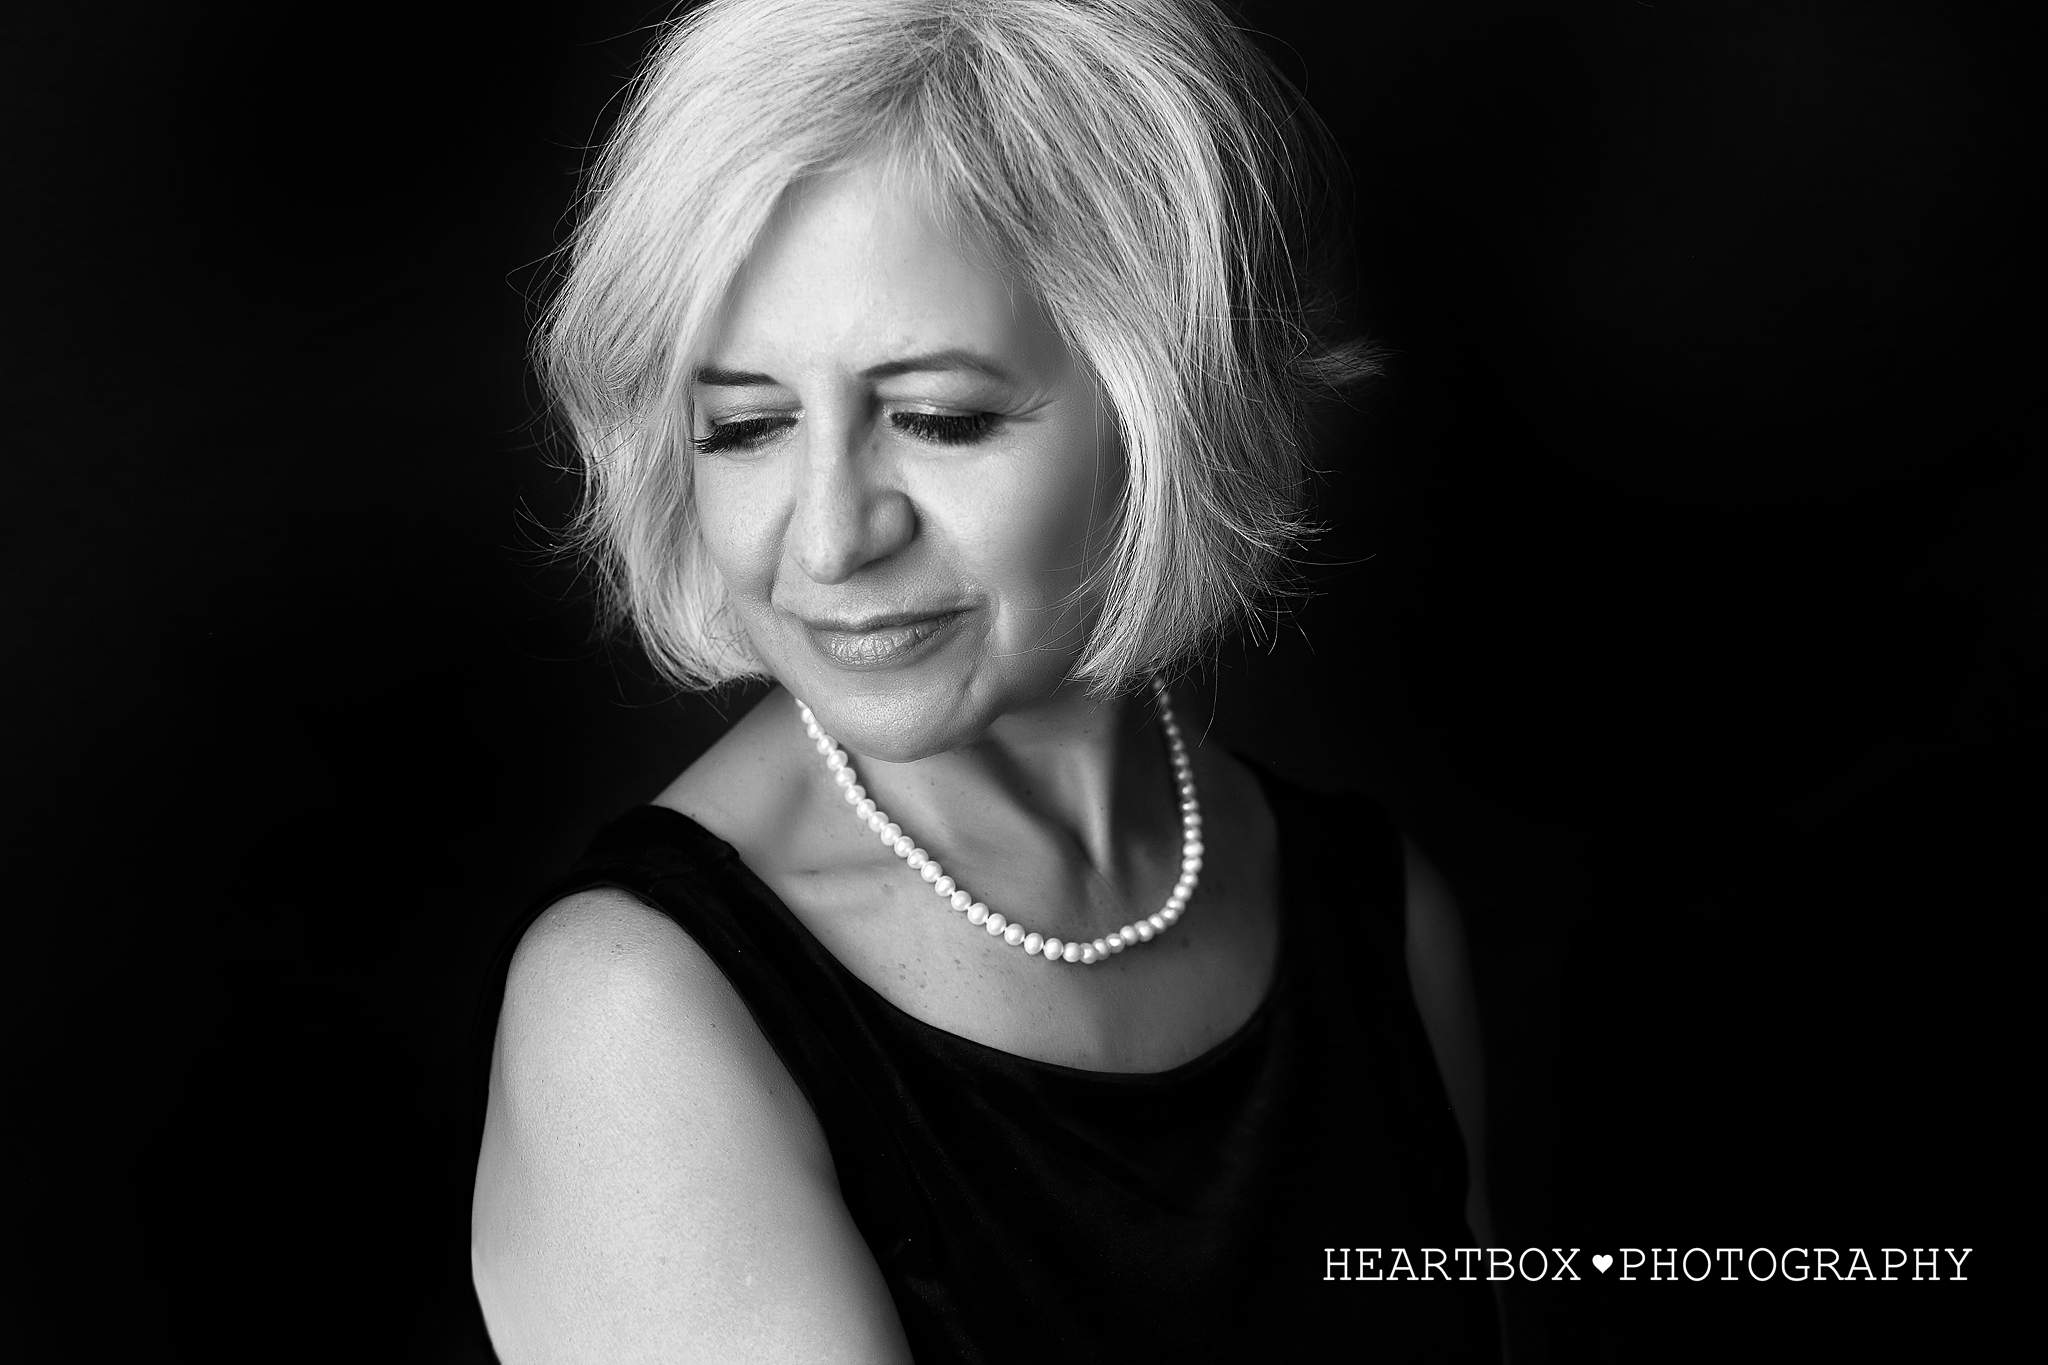 Portraits by Heartbox Photography. Copyright 2017. All rights reserved._0043.jpg